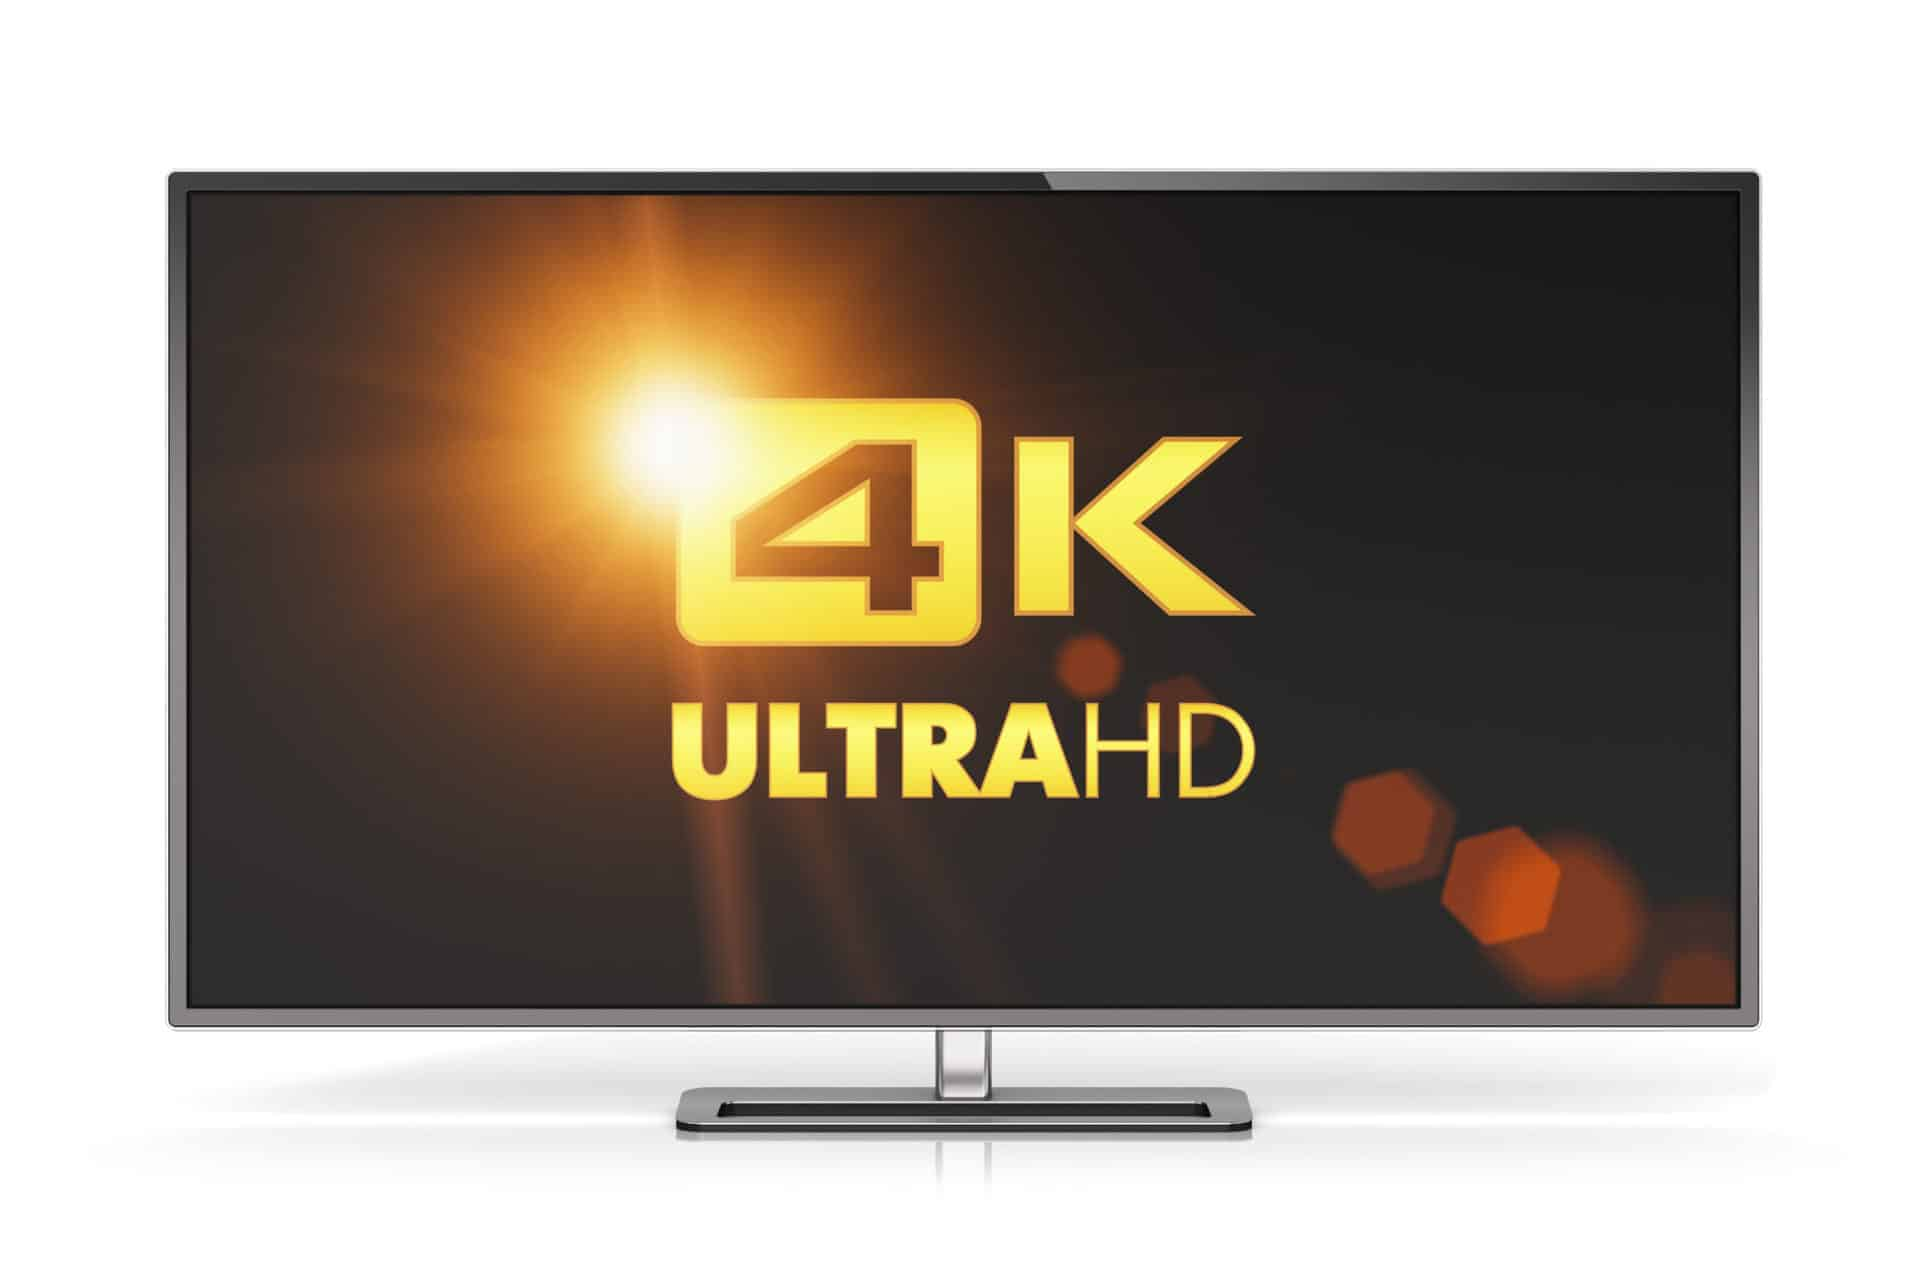 fladskaerms tv standard uhd ultra hd og 4k